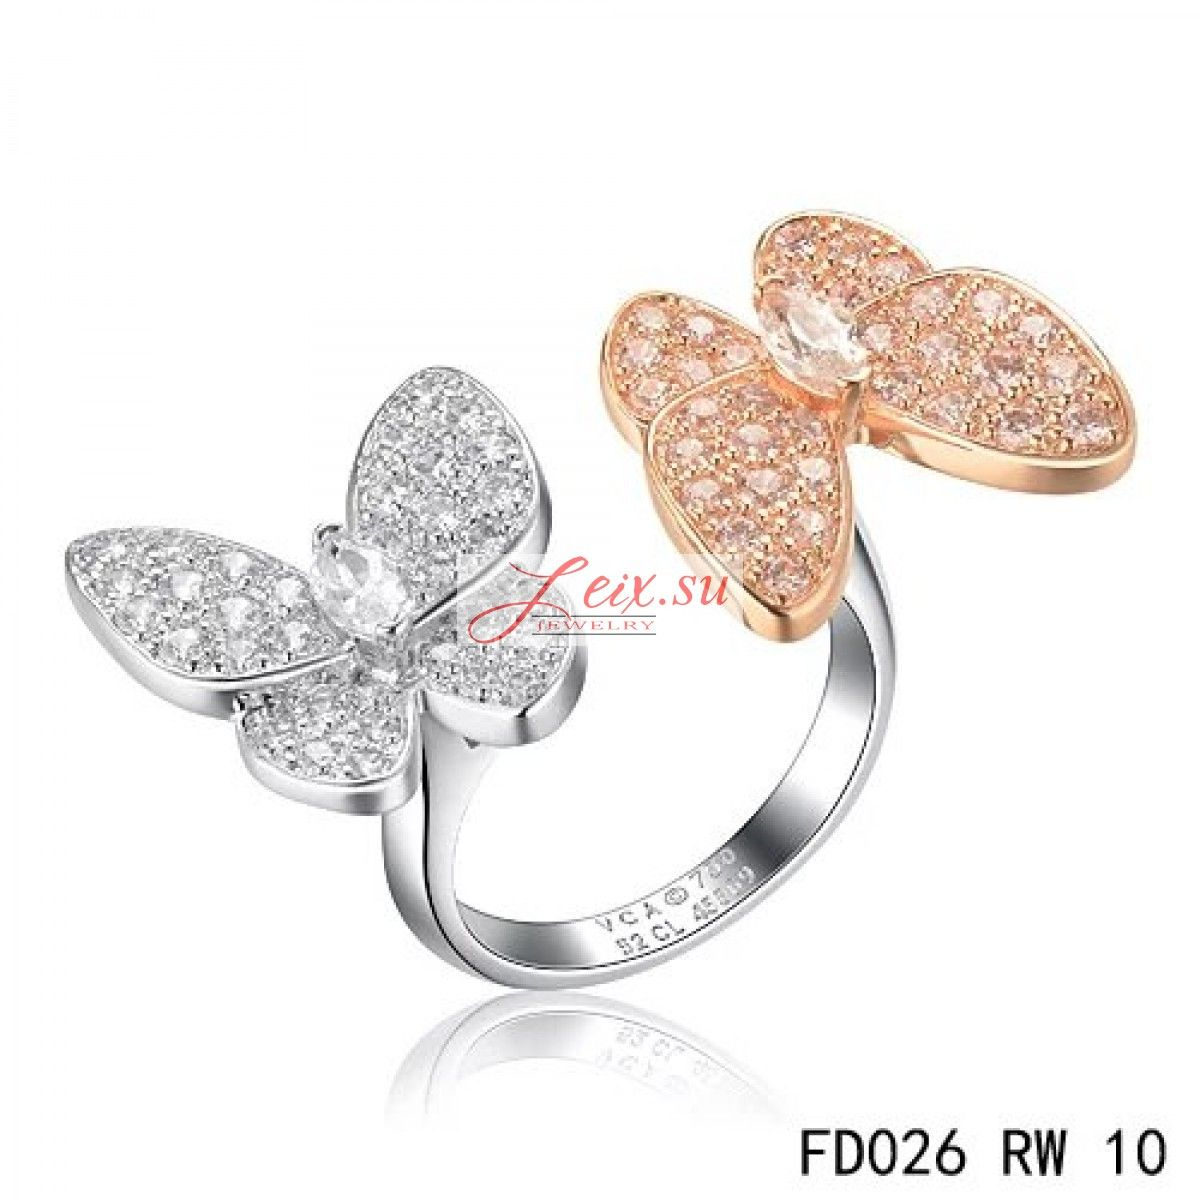 Van cleef arpels replica two butterfly between the finger ring pink gold round pink sapphires